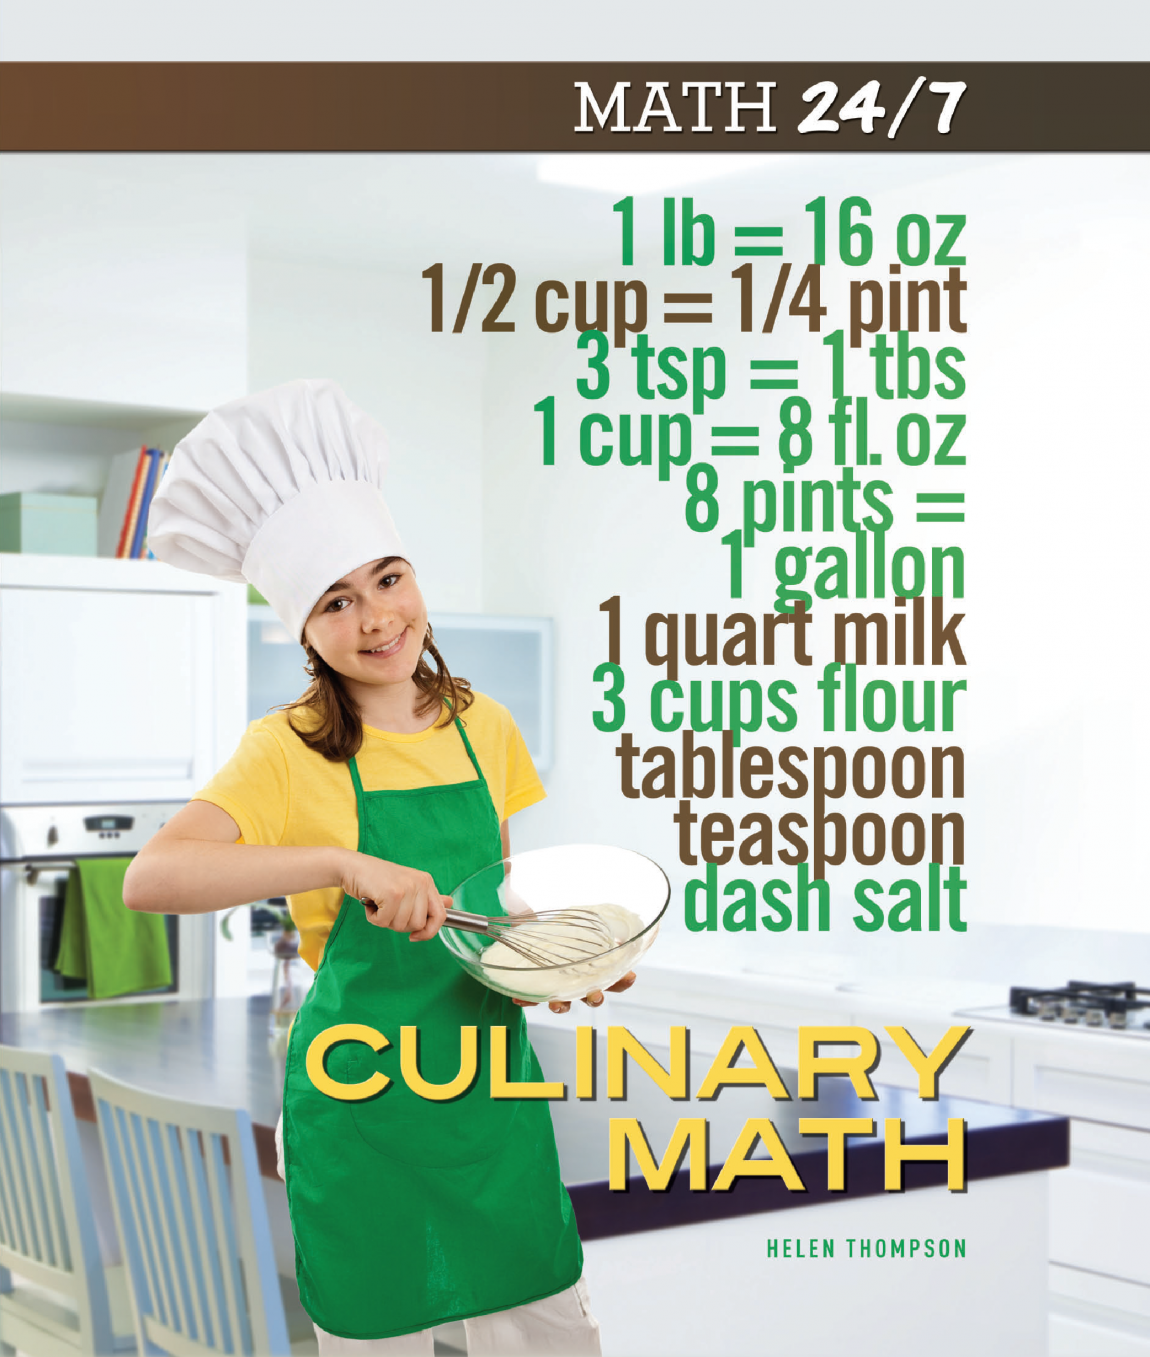 culinary-math-01.png